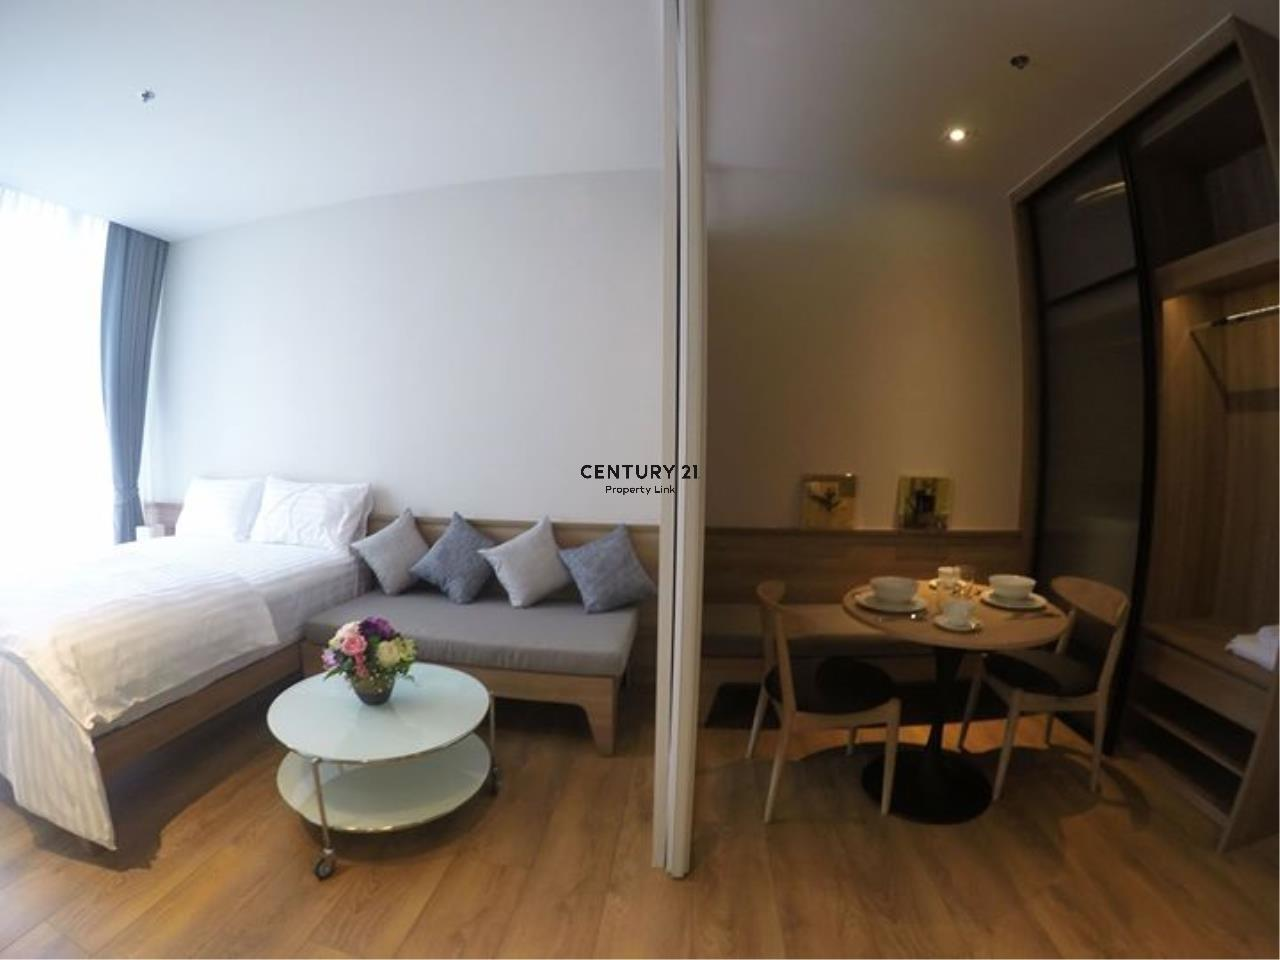 Century21 Property Link Agency's 39-CC-61513 Park 24 Room For Sale/ Rent 1 Bedroom Near BTS Phrom Phong Sale price 7.55MB./ 28,000THB/ month 2